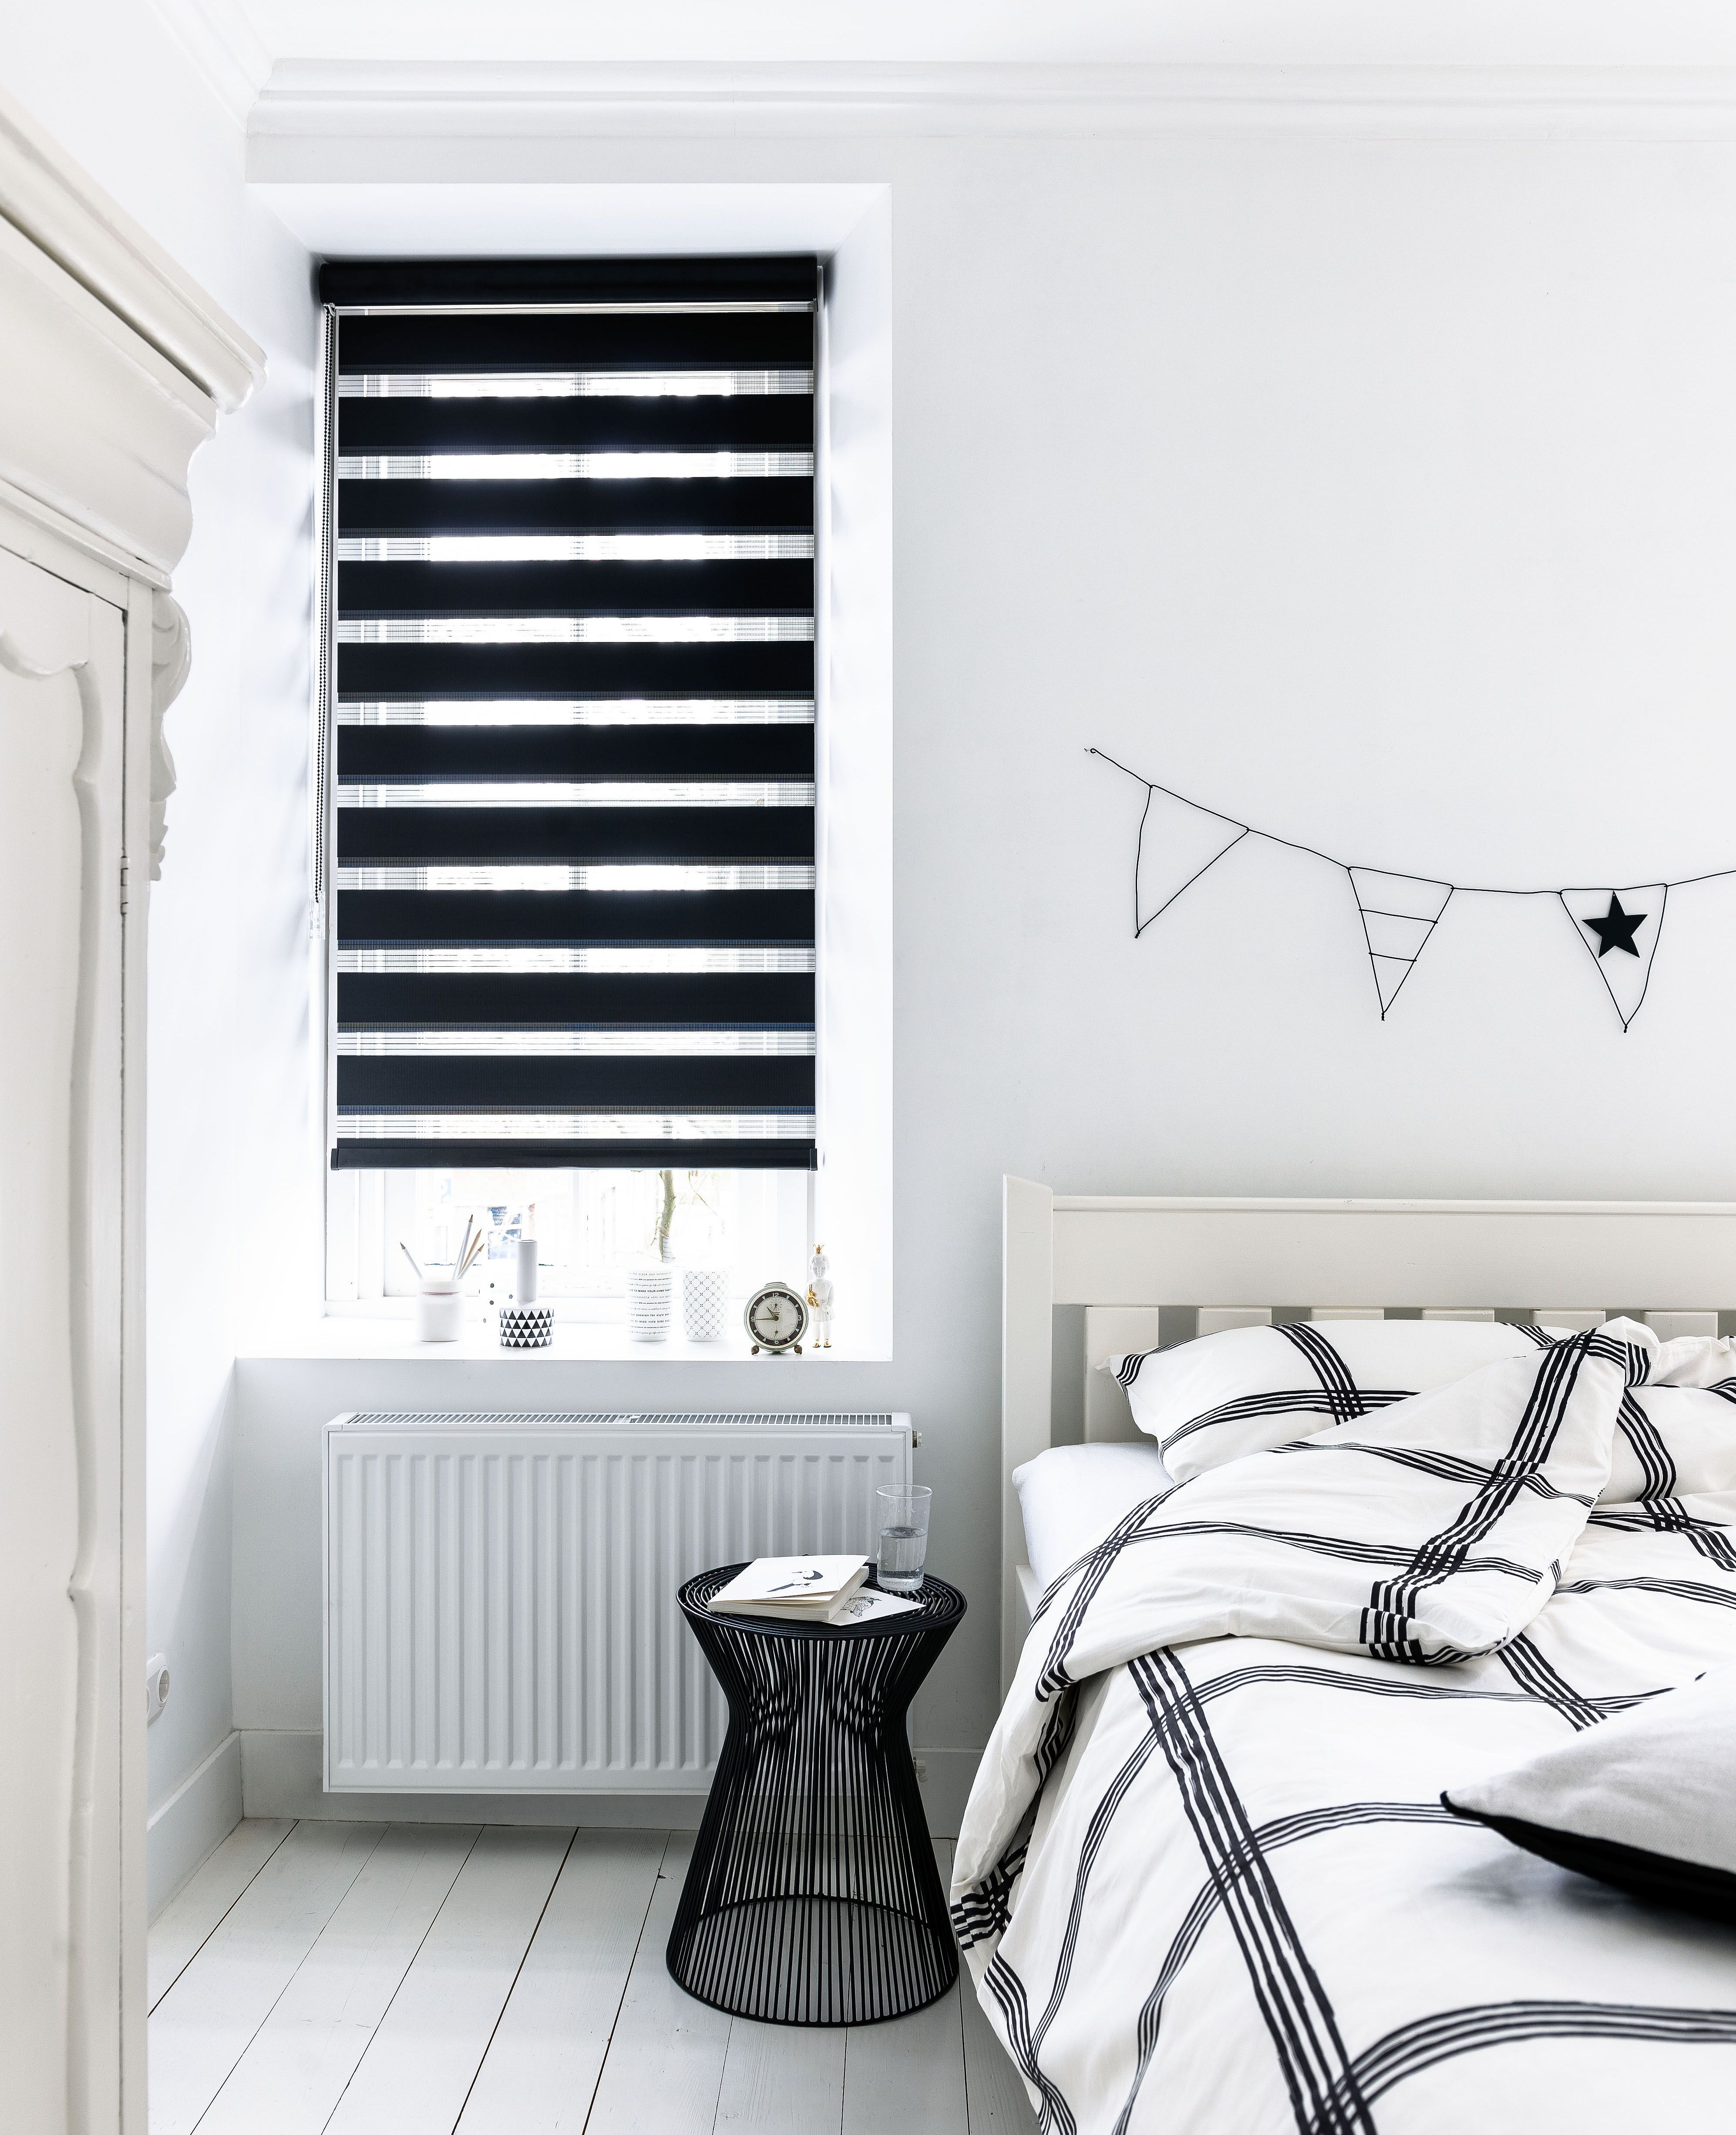 Sheer shades are innovative products that offer the privacy benefits